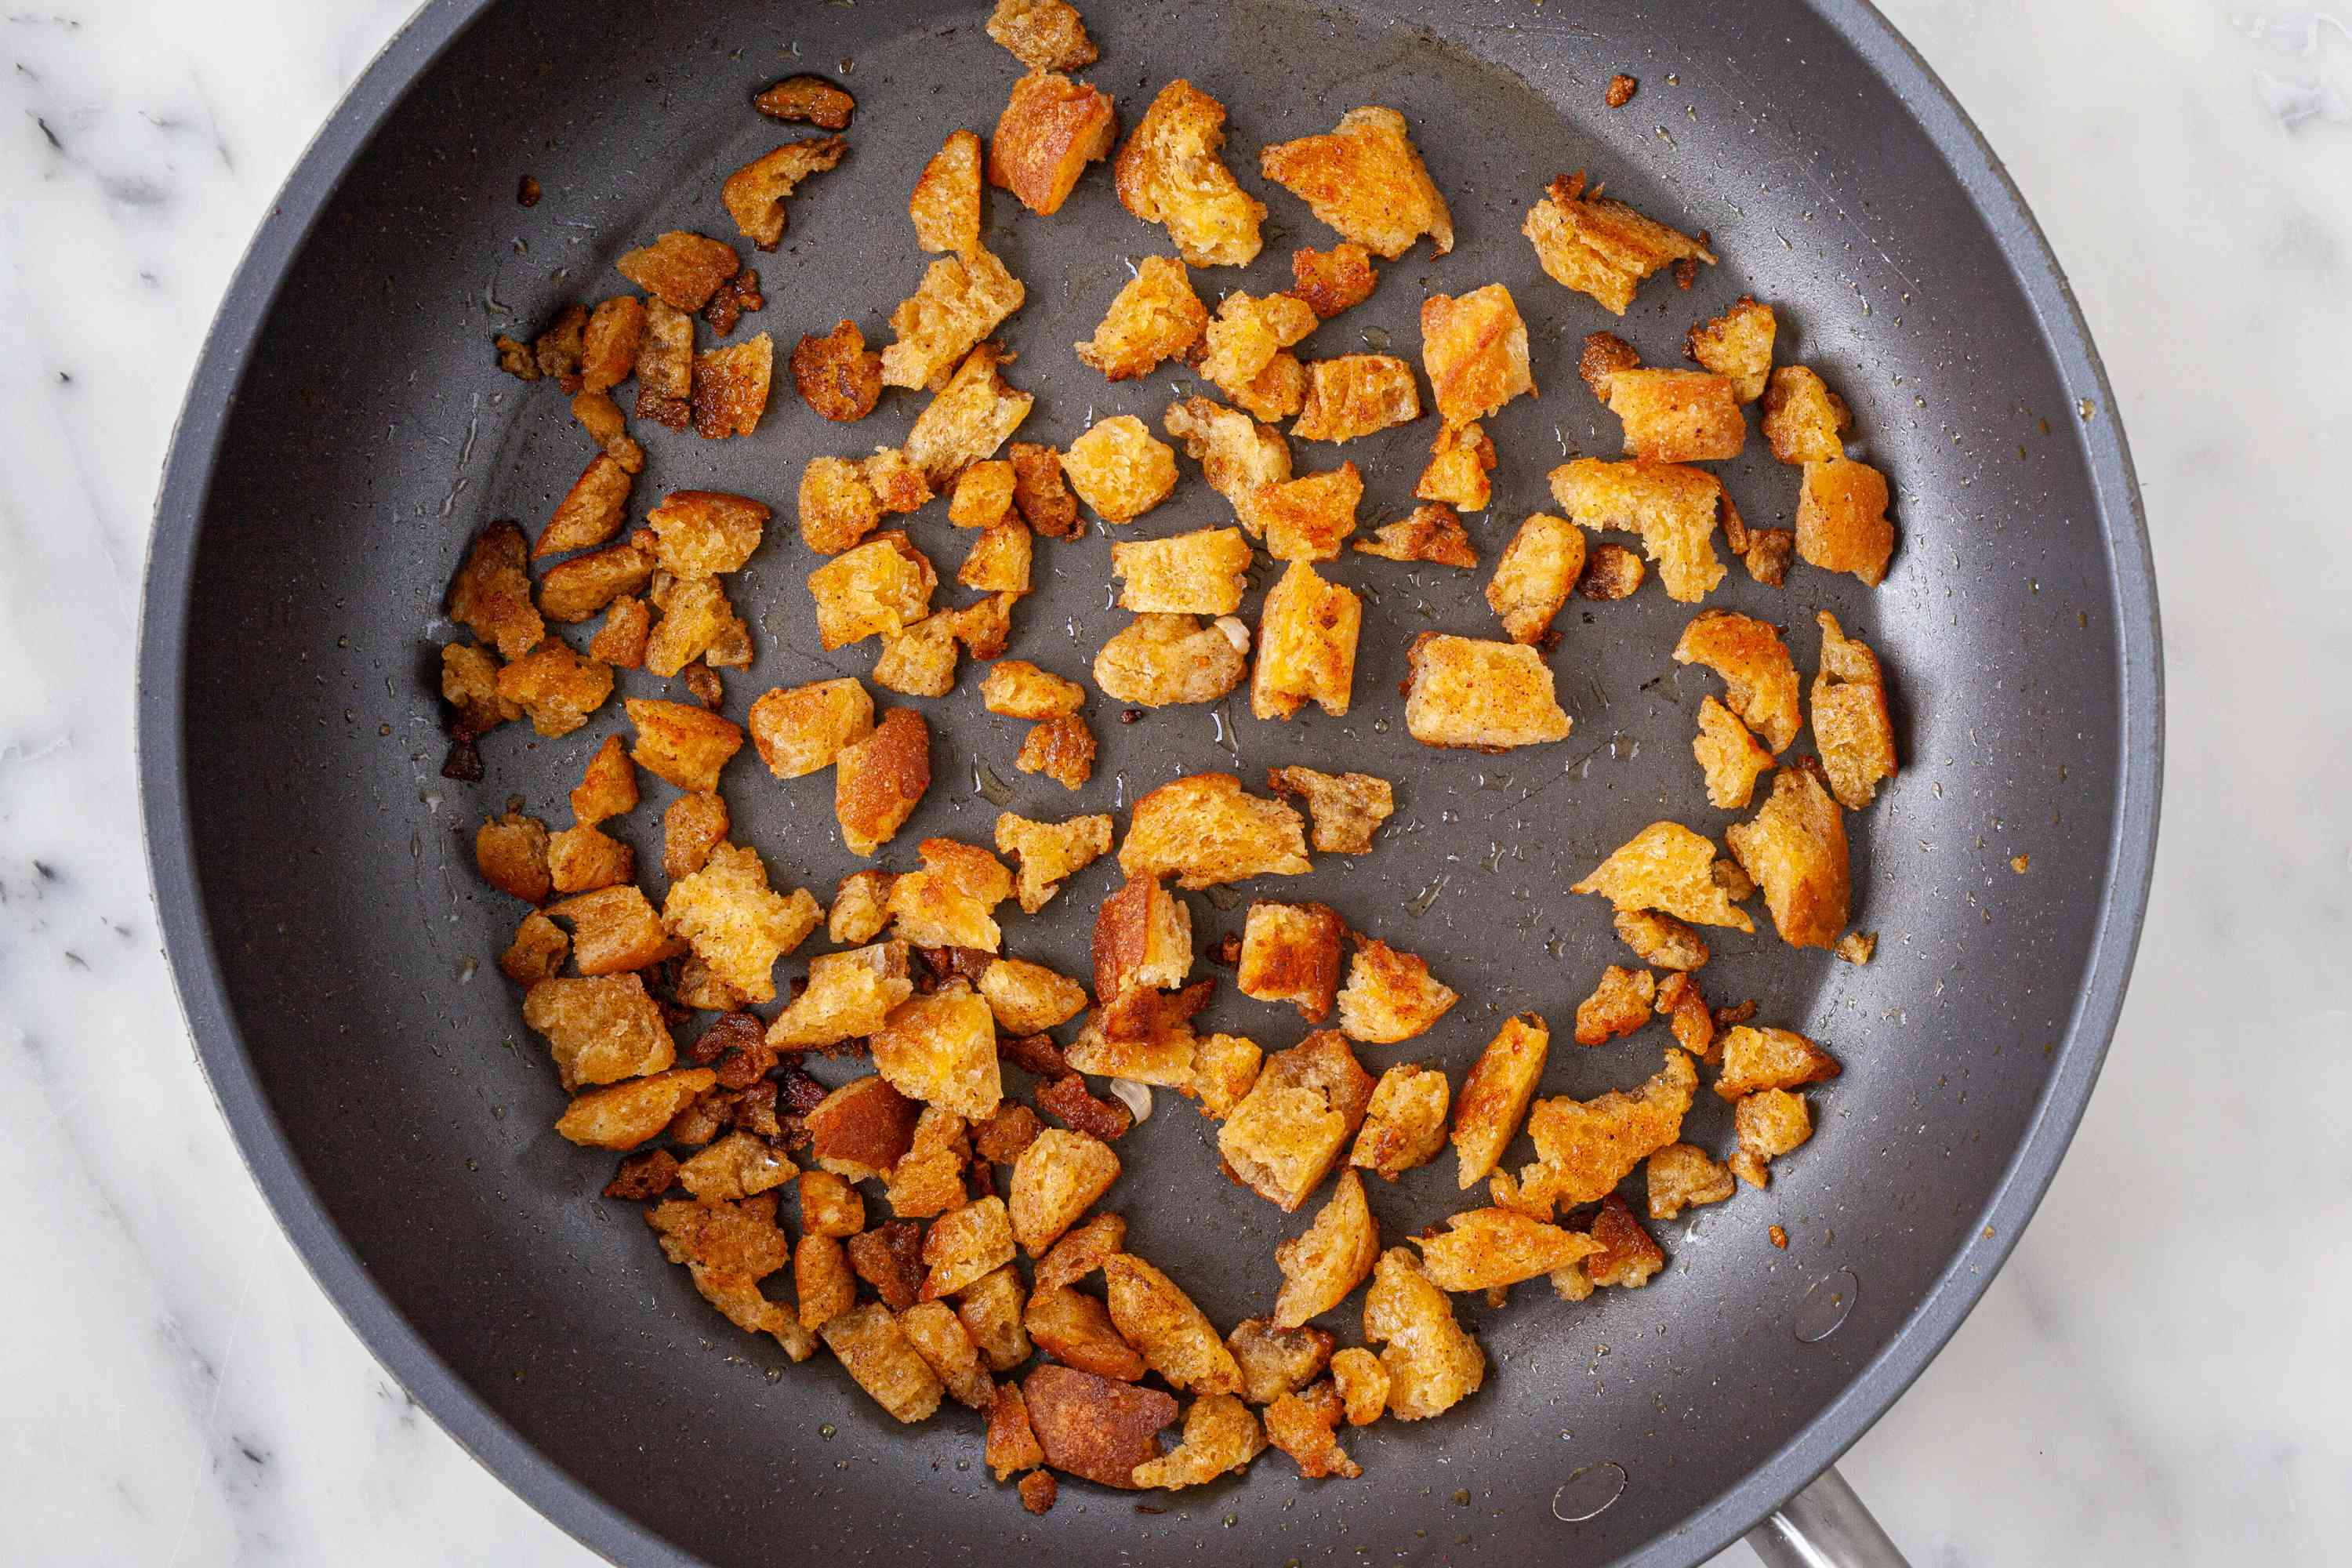 Frying cubed bread in a skillet for Spanish Style Migas with Asparagus, Chorizo, Bacon, and Eggs.